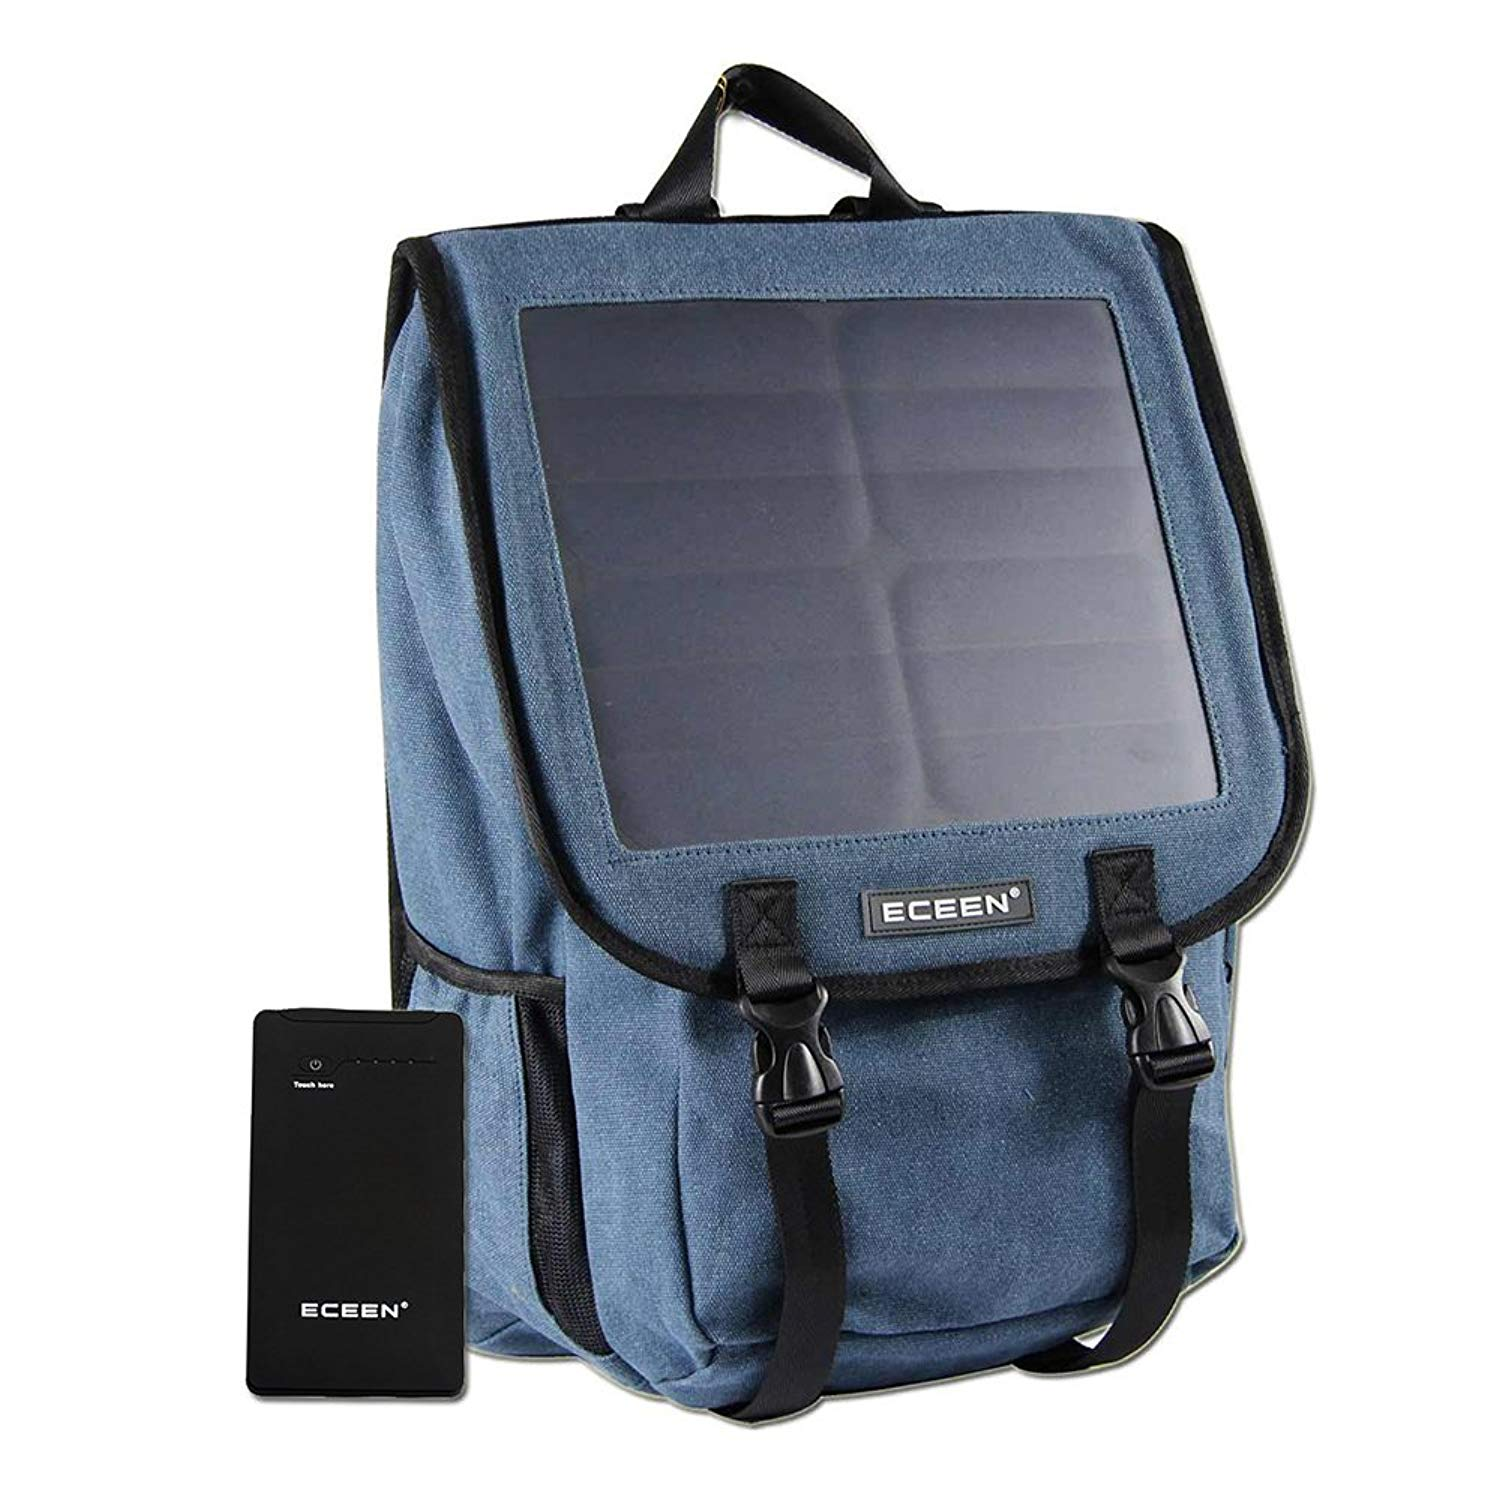 Solar Powered Backpack with High Efficiency Solar Panel Bag Solar Charger Pack with Voltage Regulate Charging For iPhone, iPad, SAMSUNG, Gopro Cameras etc. 5V Device